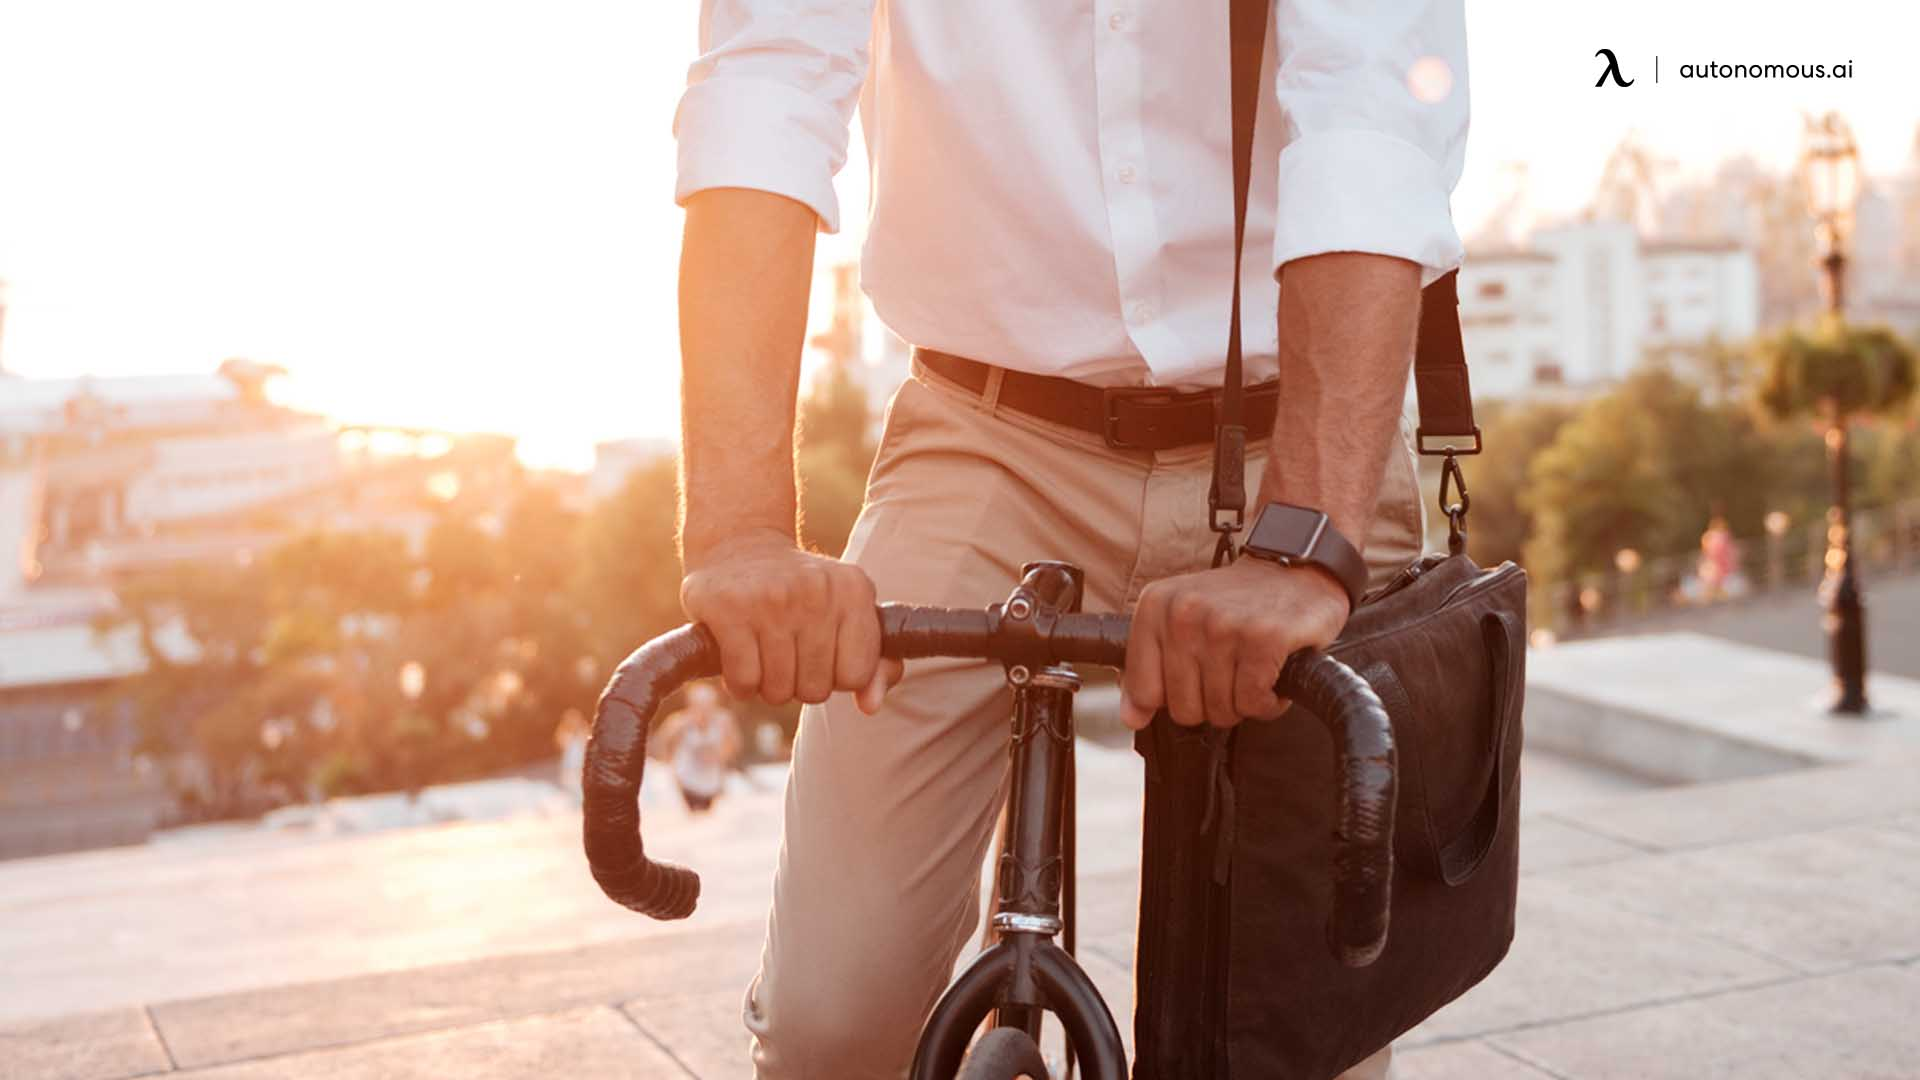 Cycle or Walk to the Office